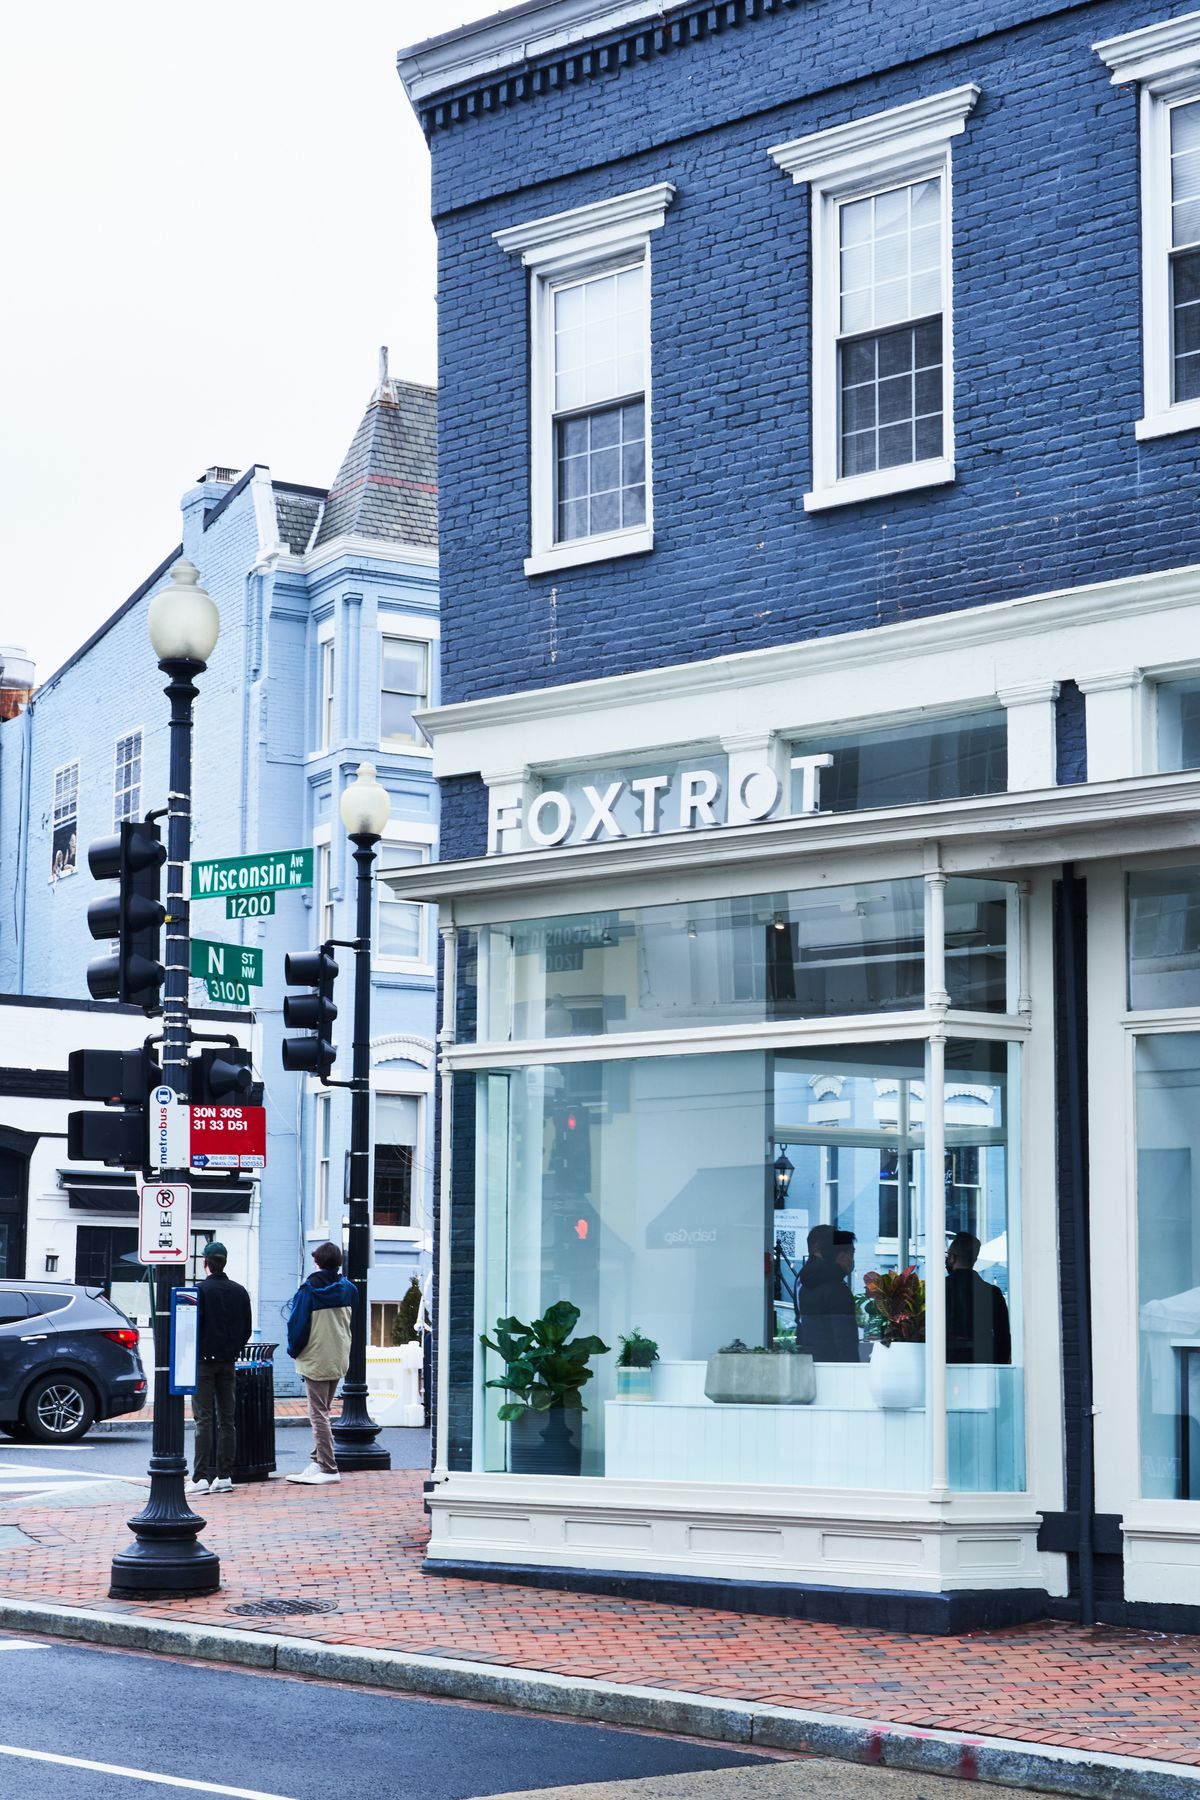 Foxtrot has a high-traffic location at the corner of Wisconsin Avenue and N Street NW